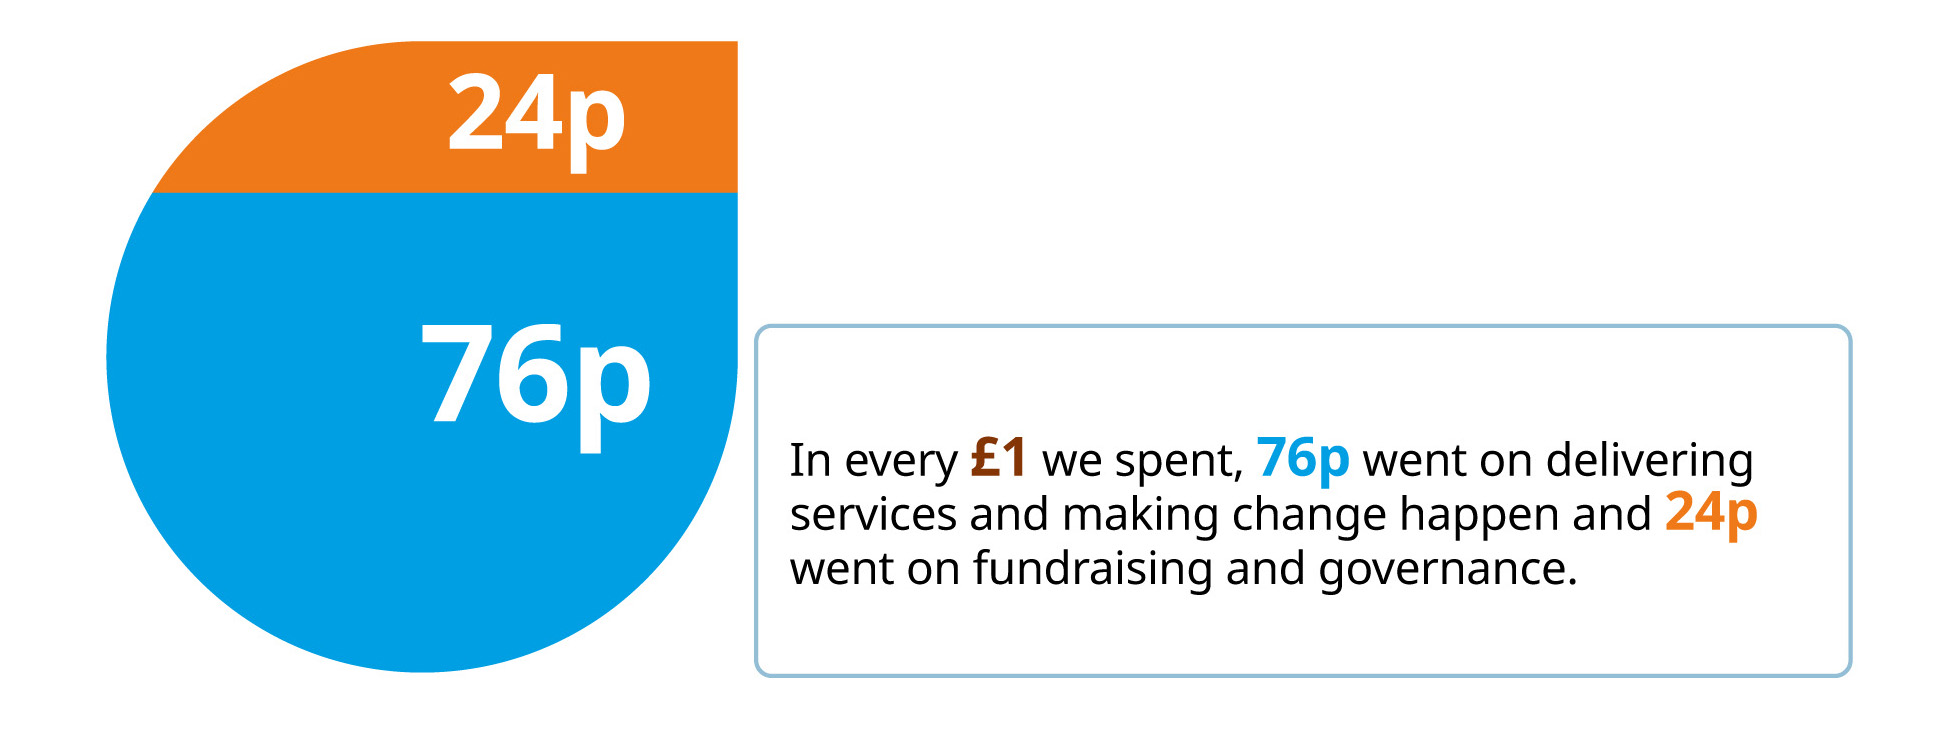 Graphic showing in every £1 we spent 76p on delivering services and 24p on fundraising and governance.